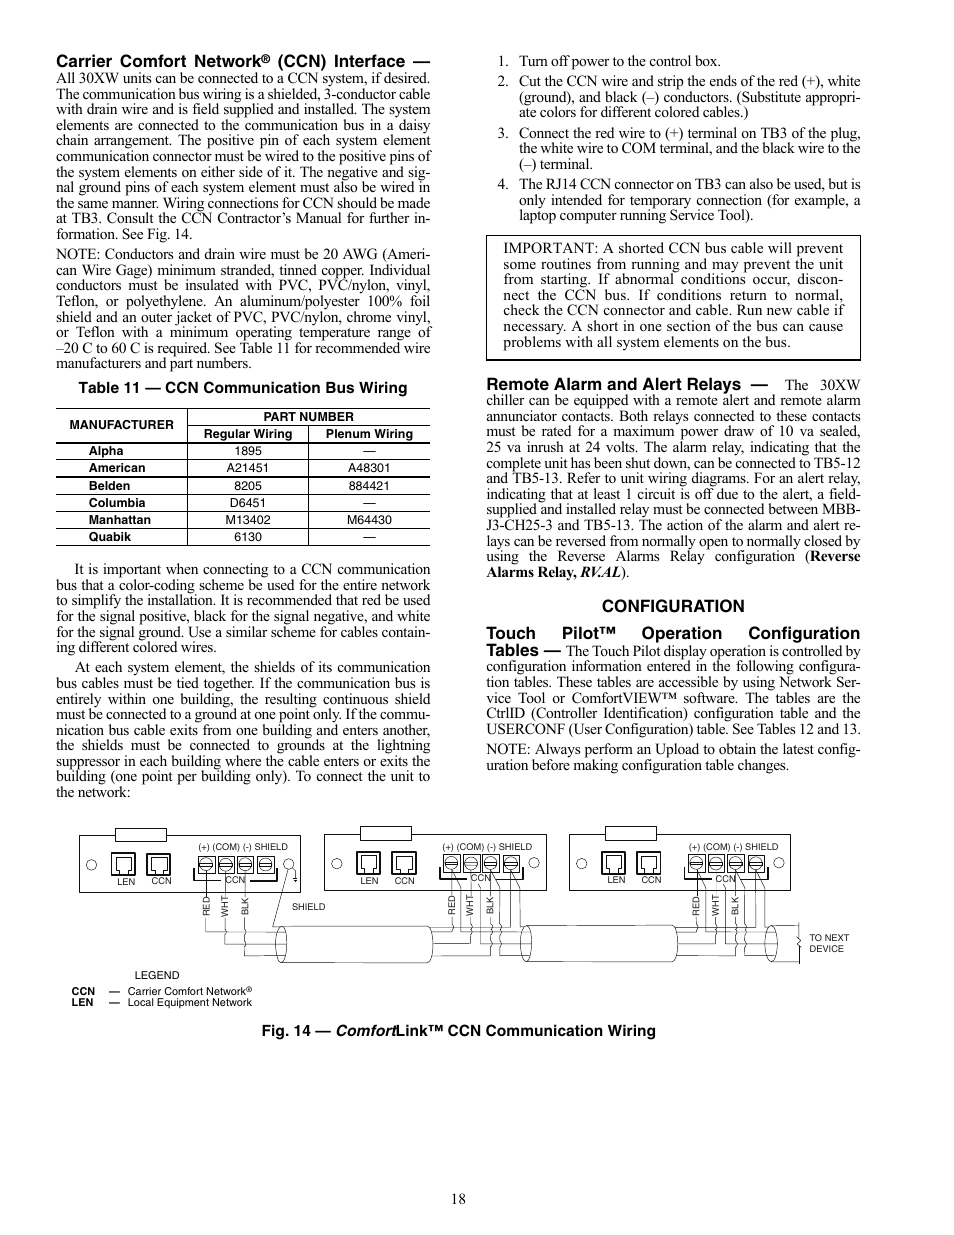 Carrier comfort network, Ccn) interface, Remote alarm and alert relays    Carrier AQUAFORCE 30XW150-400 User Manual   Page 18 / 148